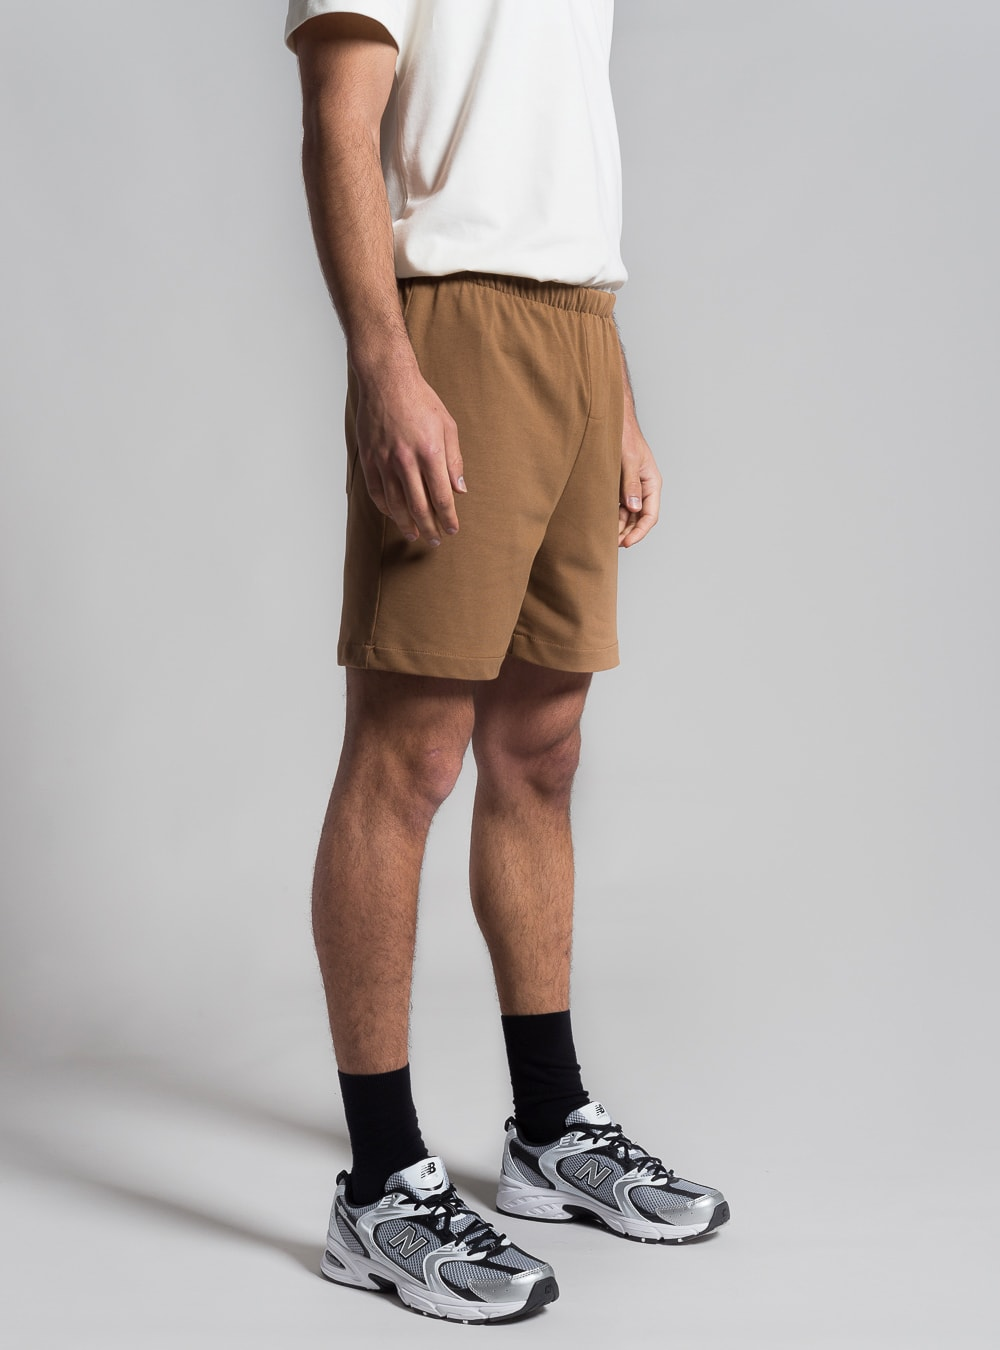 Relaxed jersey shorts (brown) made in Portugal by wetheknot